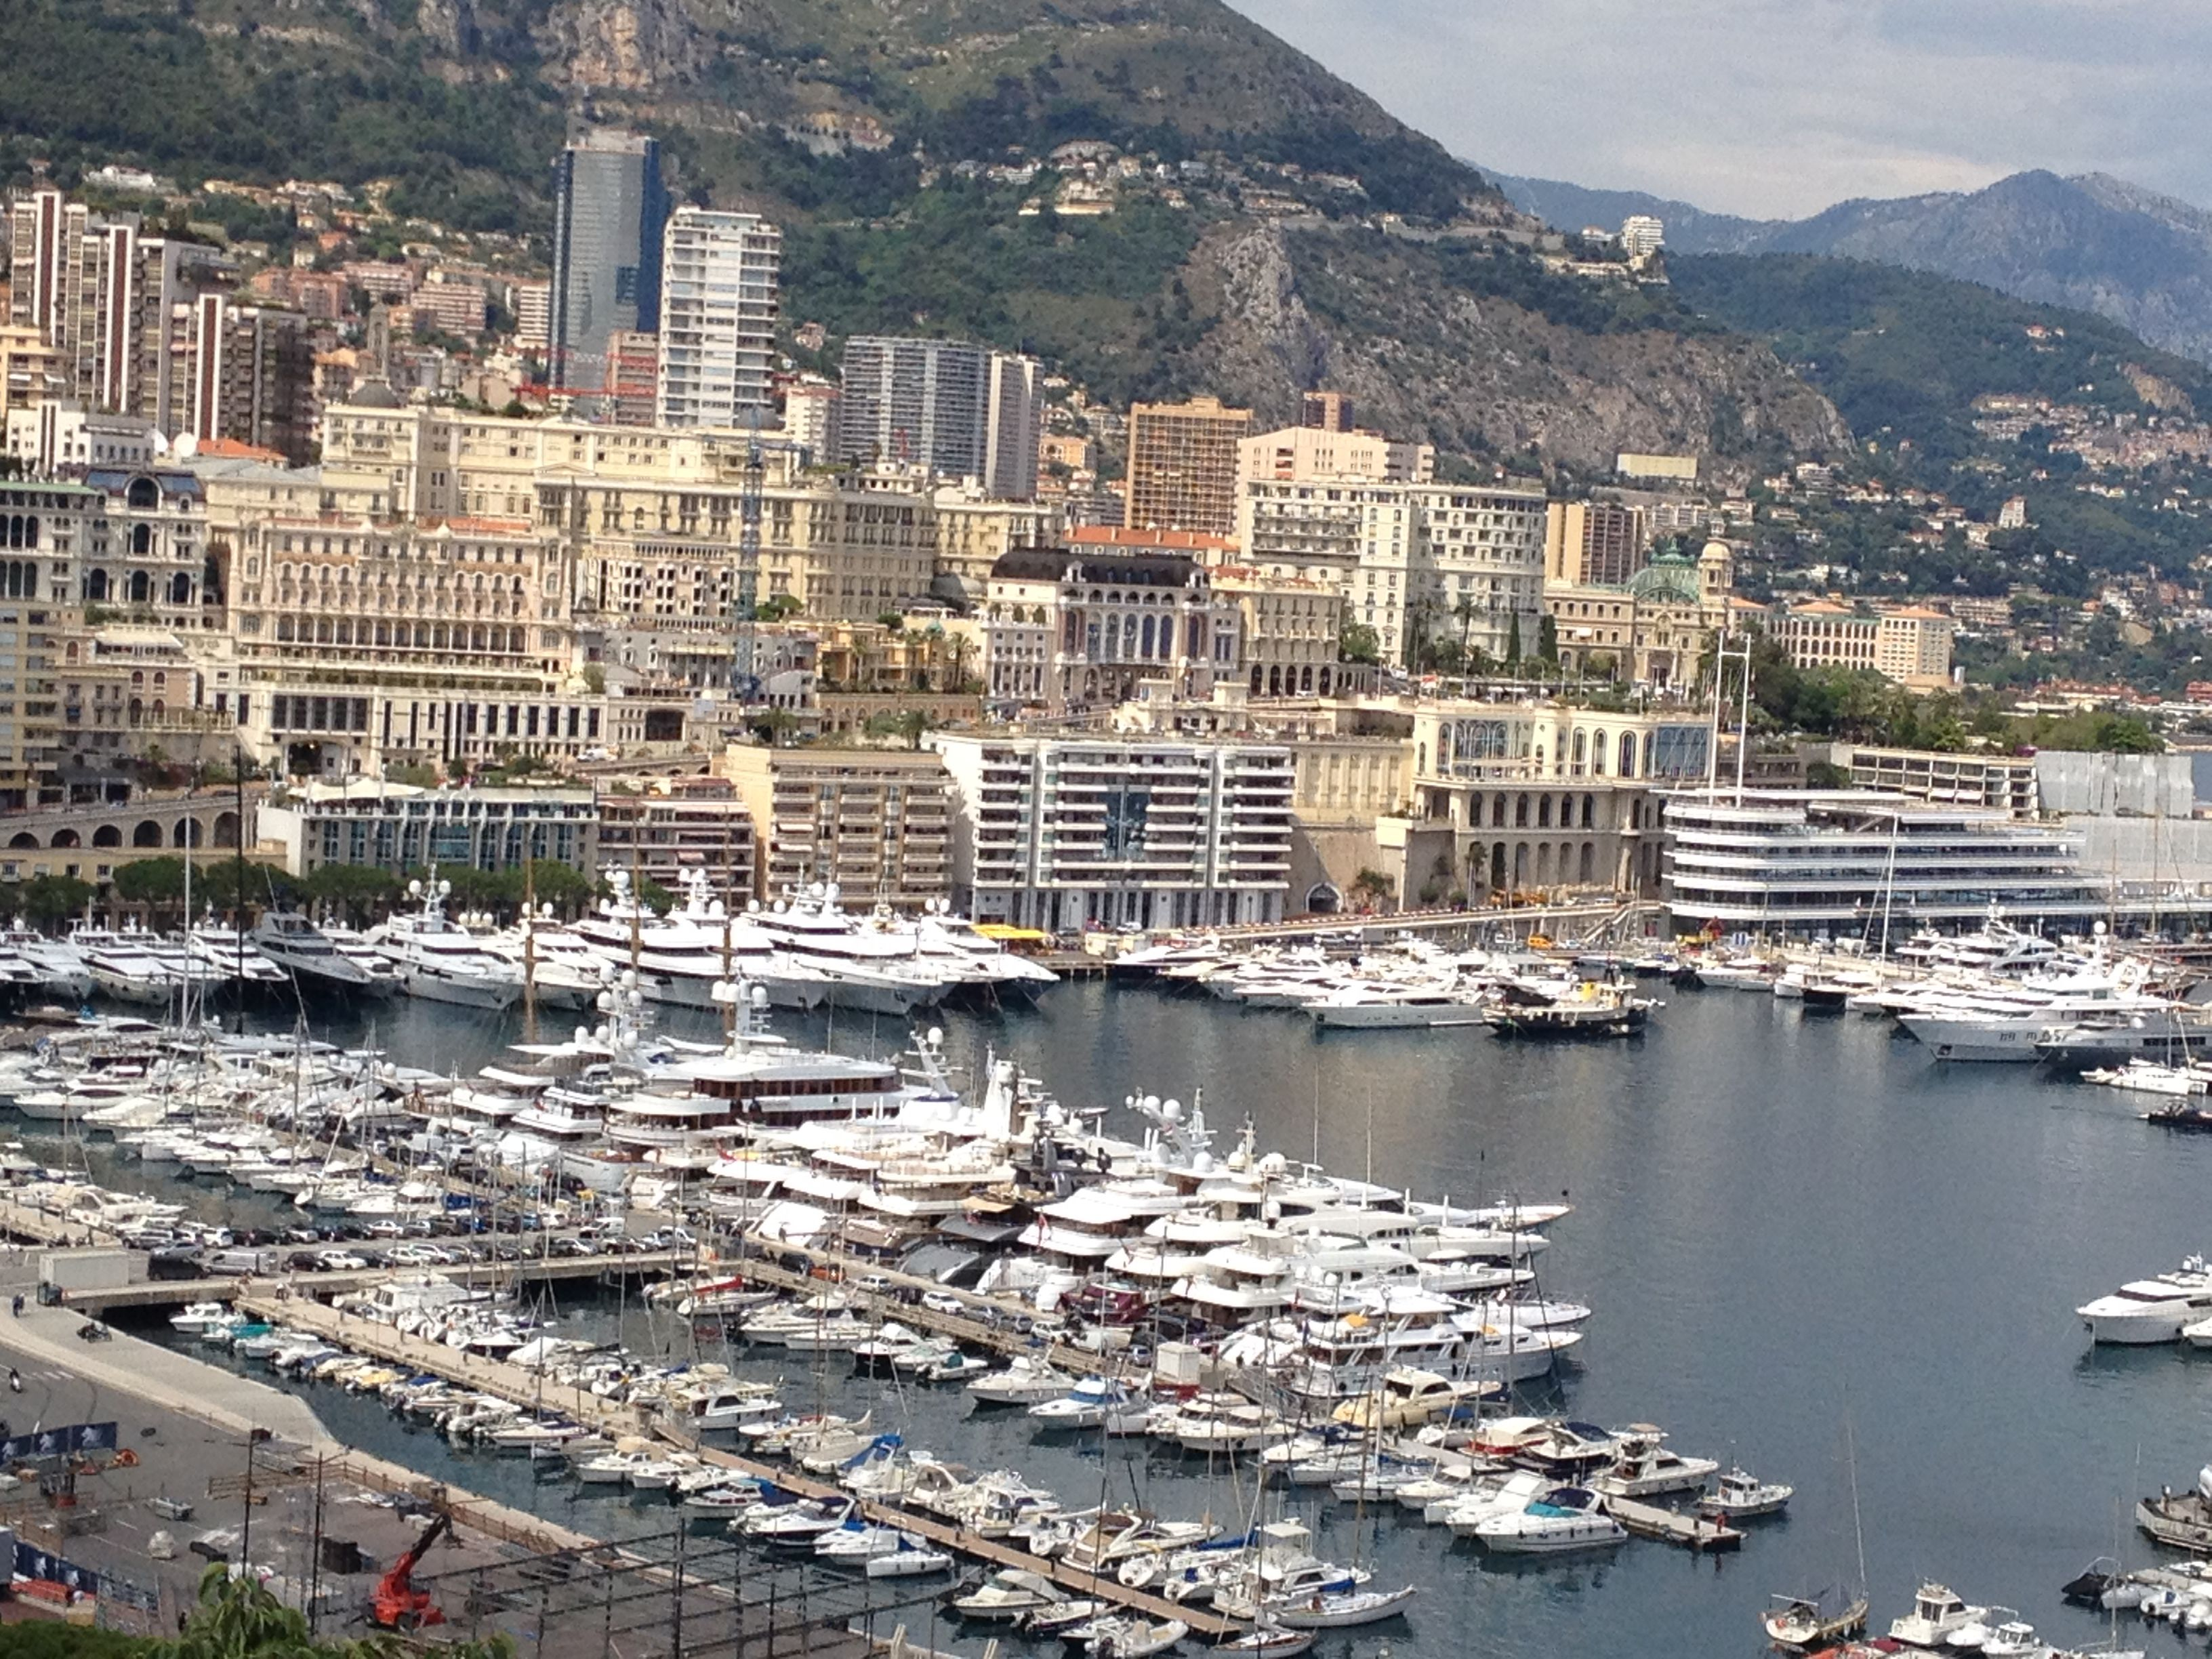 Monaco Call Sabrina MurrayTravel @ 724-309-3278 for planning your next vacation.